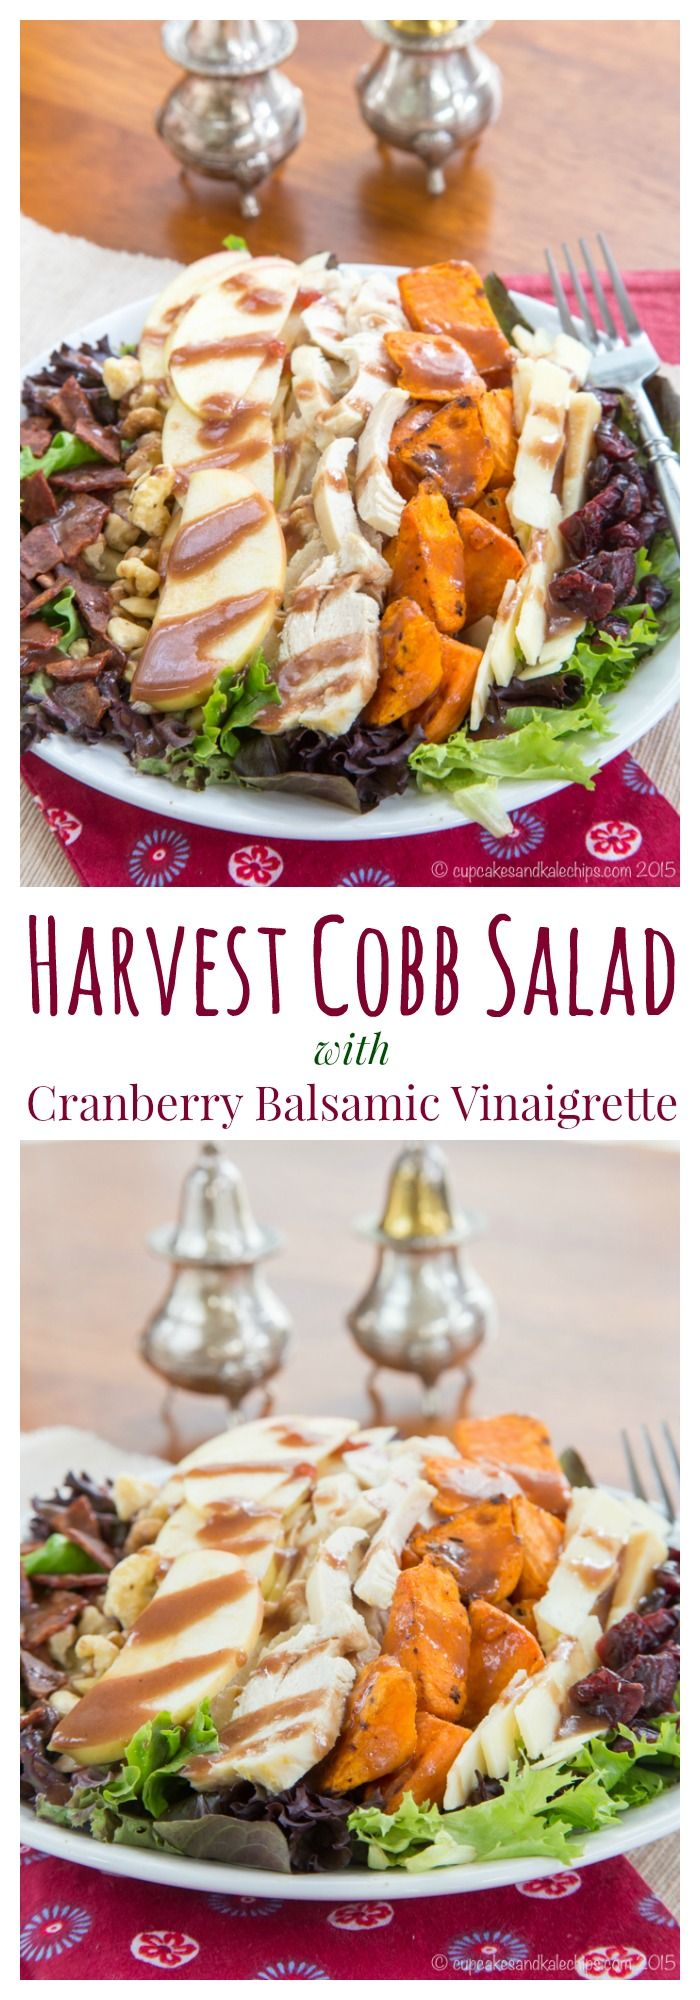 Harvest Cobb Salad | Recipe | Thanksgiving, Gluten free and Free ...